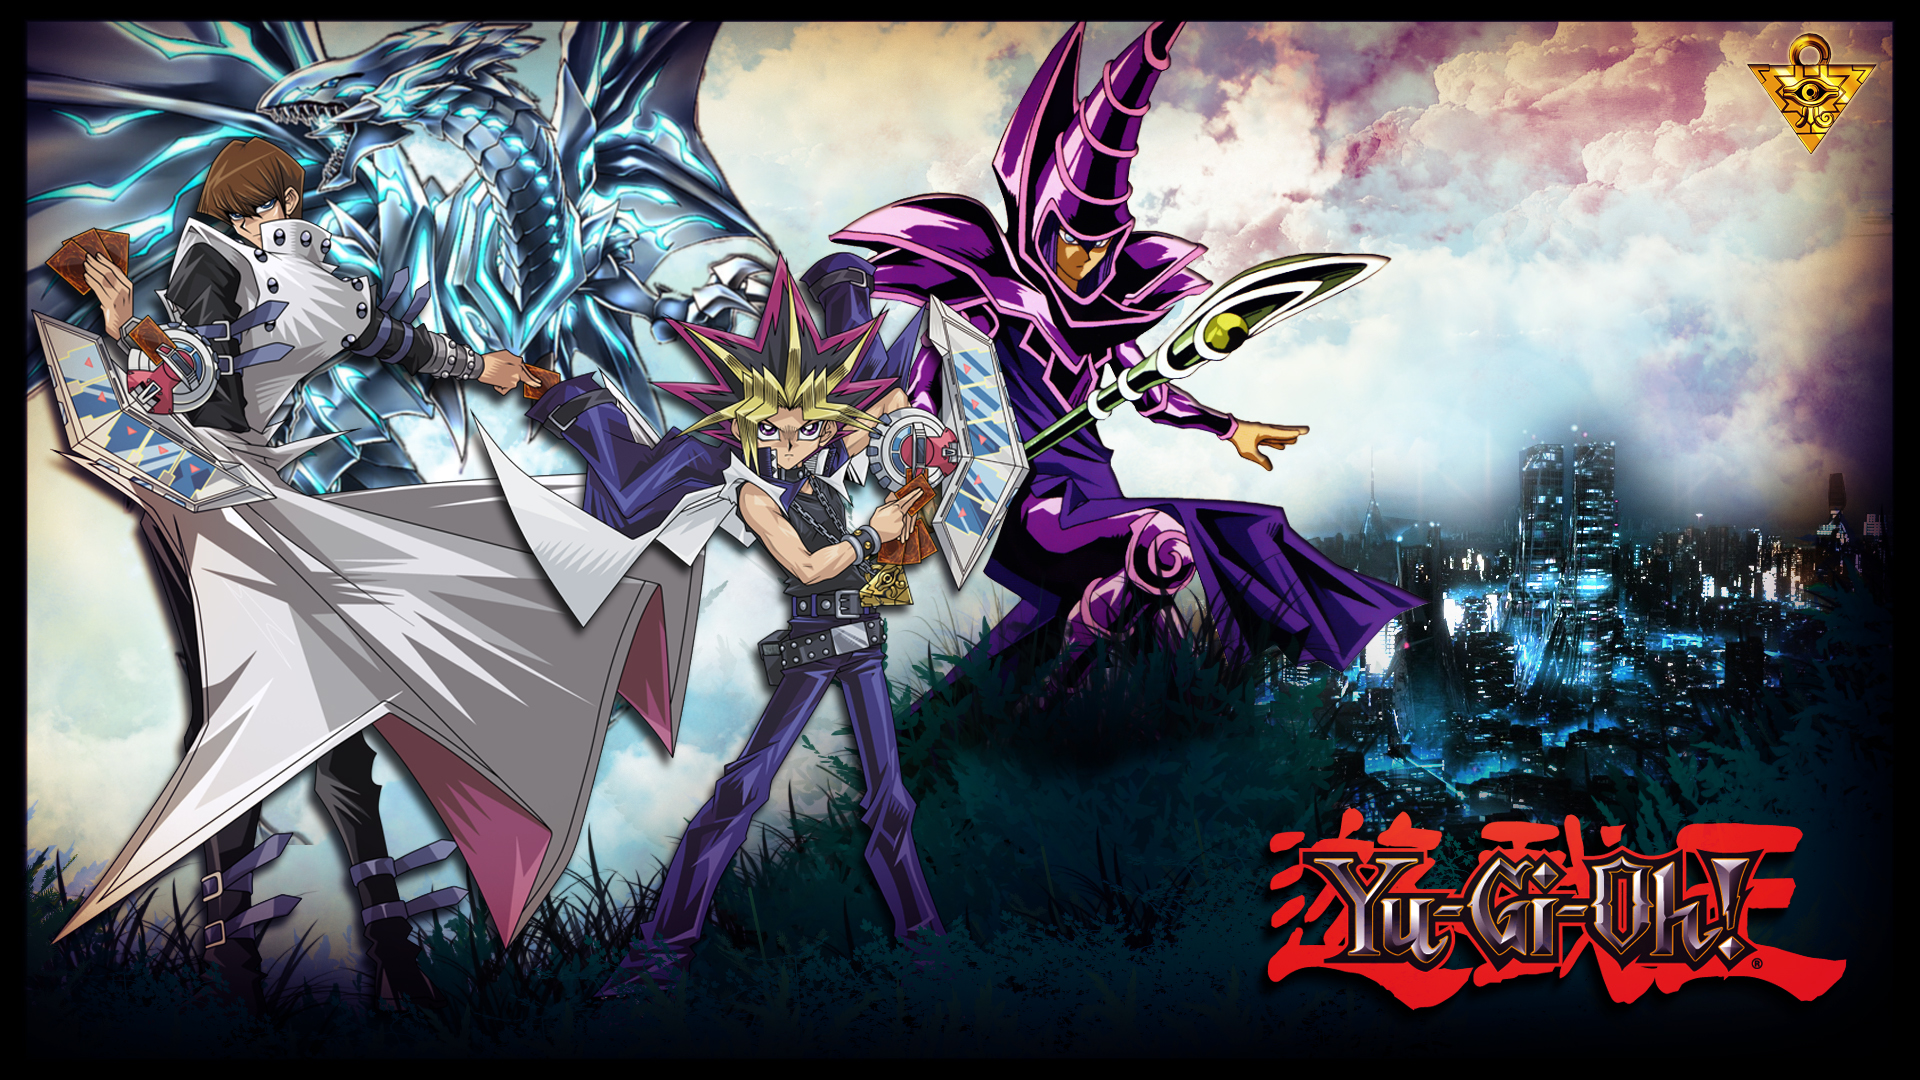 Yugioh Wallpaper 1080p By Ashesrising13 On Deviantart